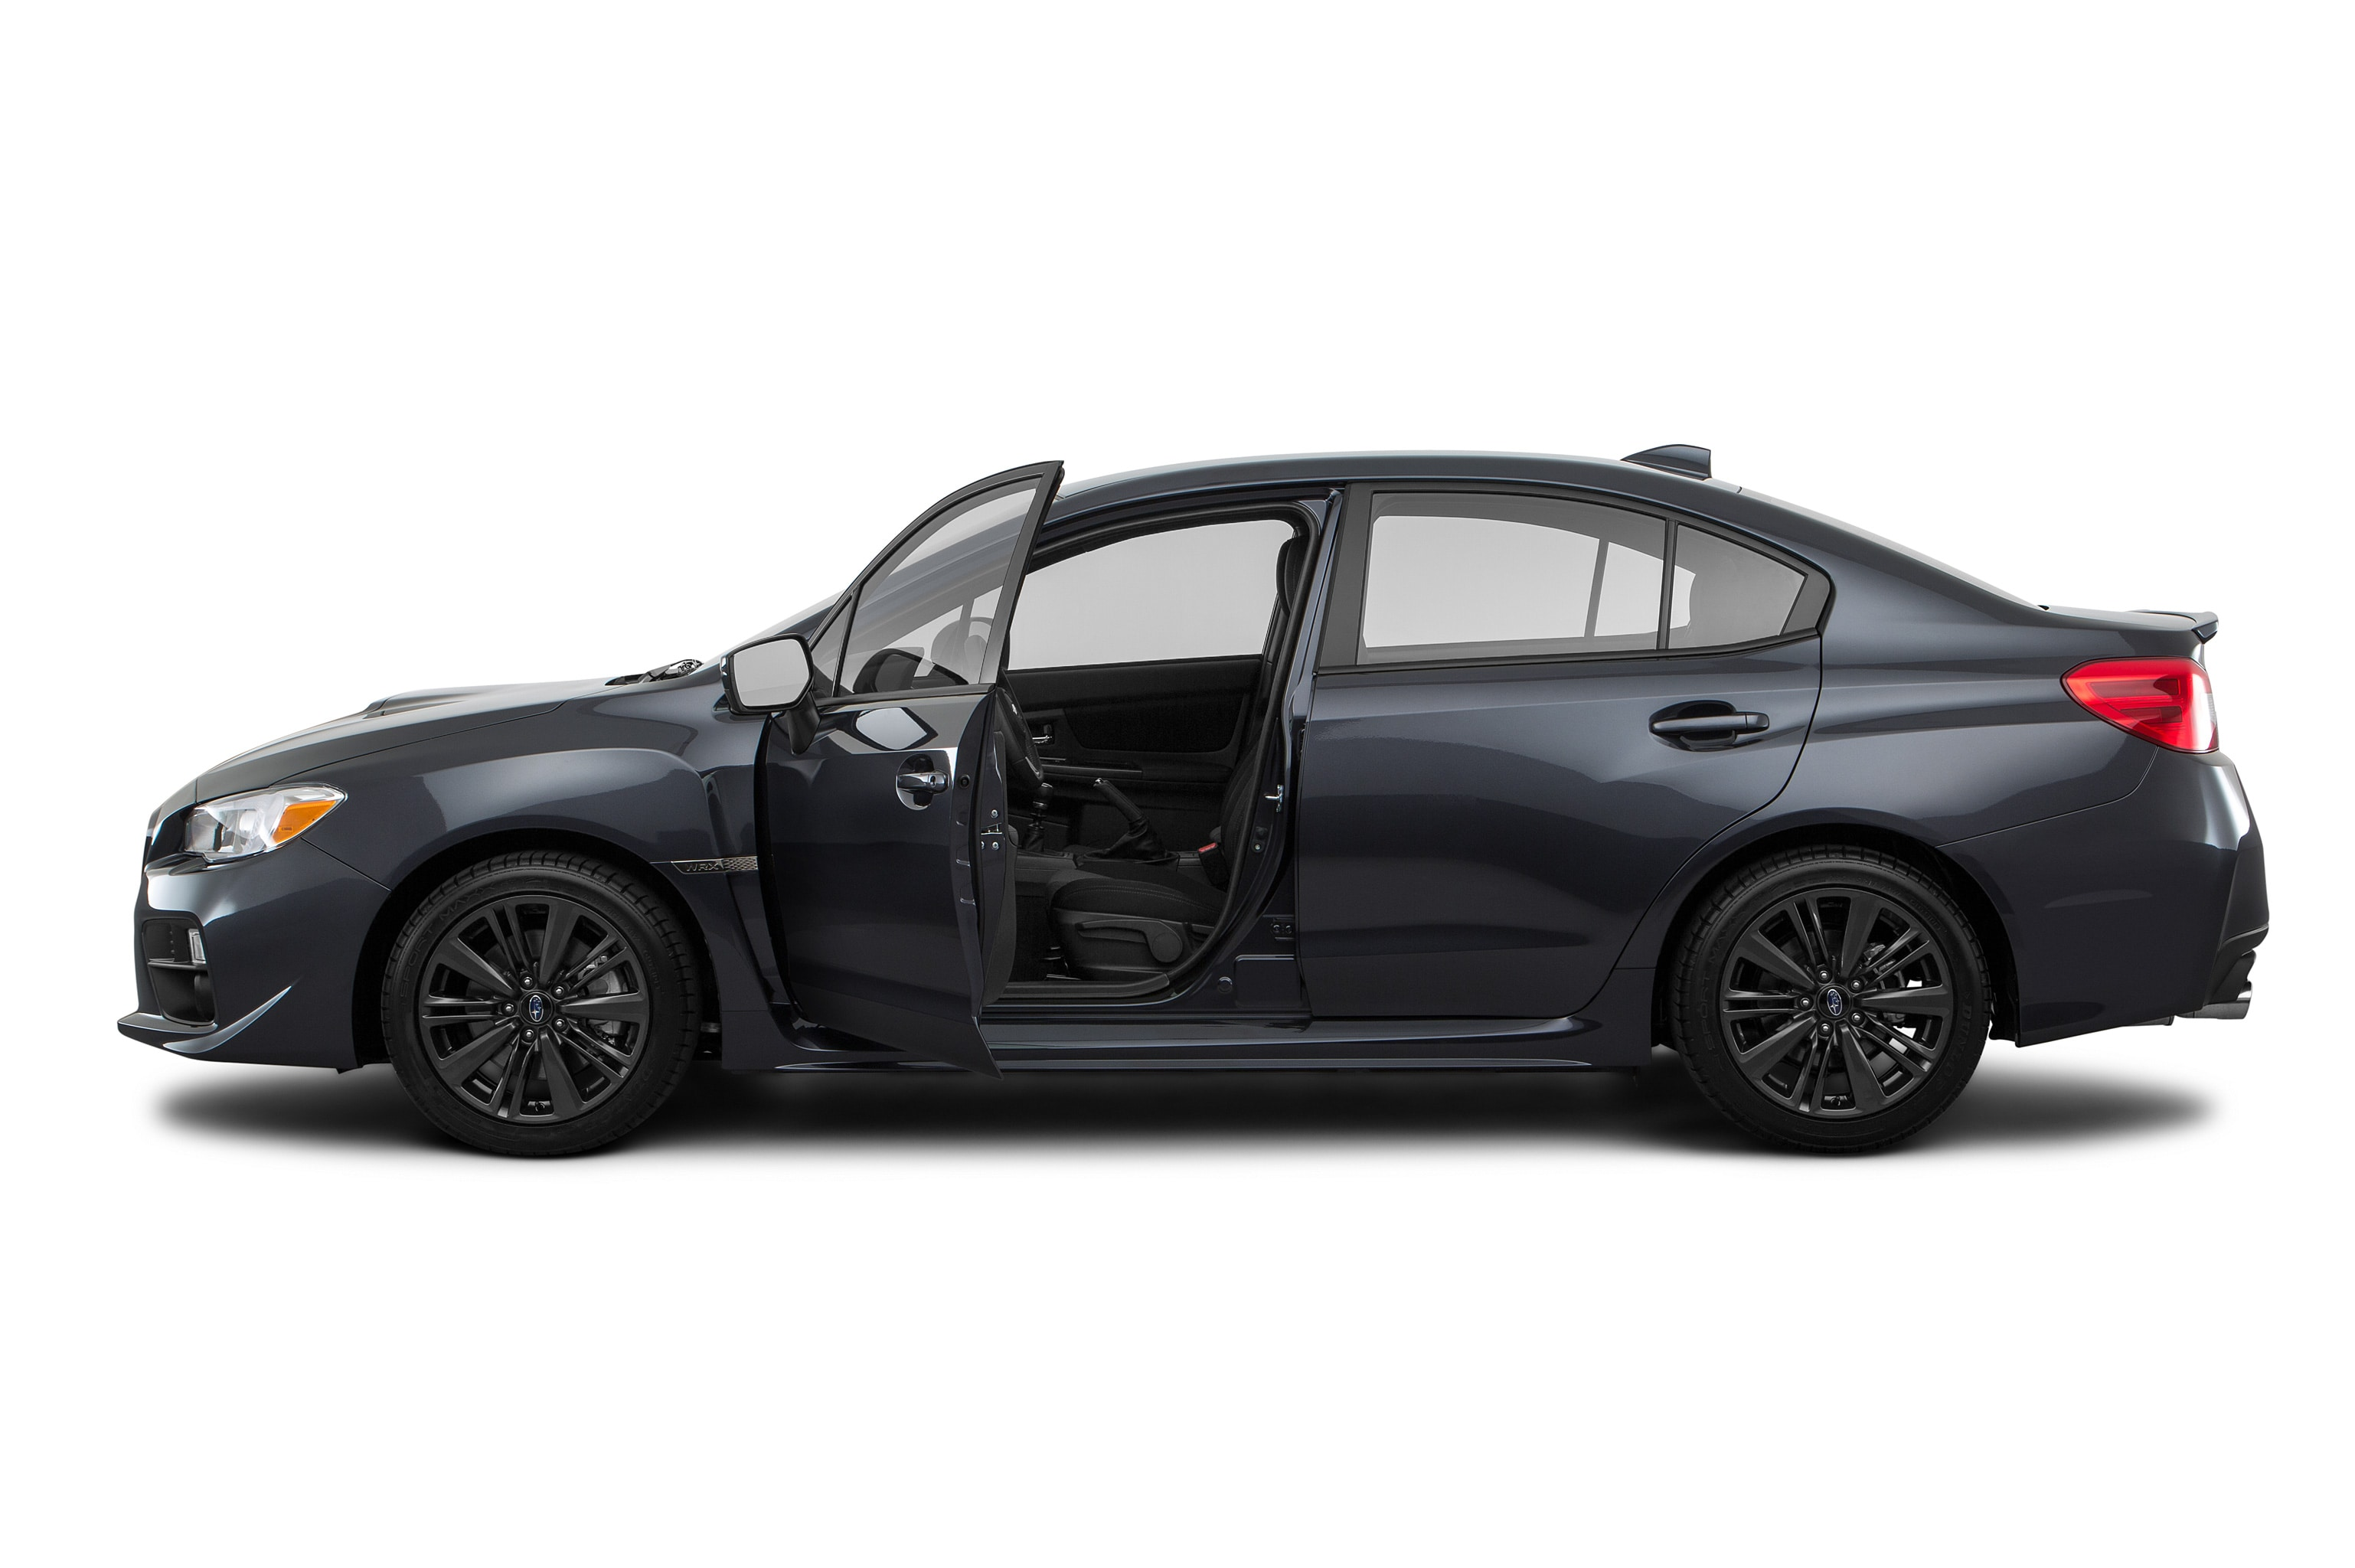 New Motors Subaru Erie Pa >> New Motors Subaru Erie Pa | New Car Release Information